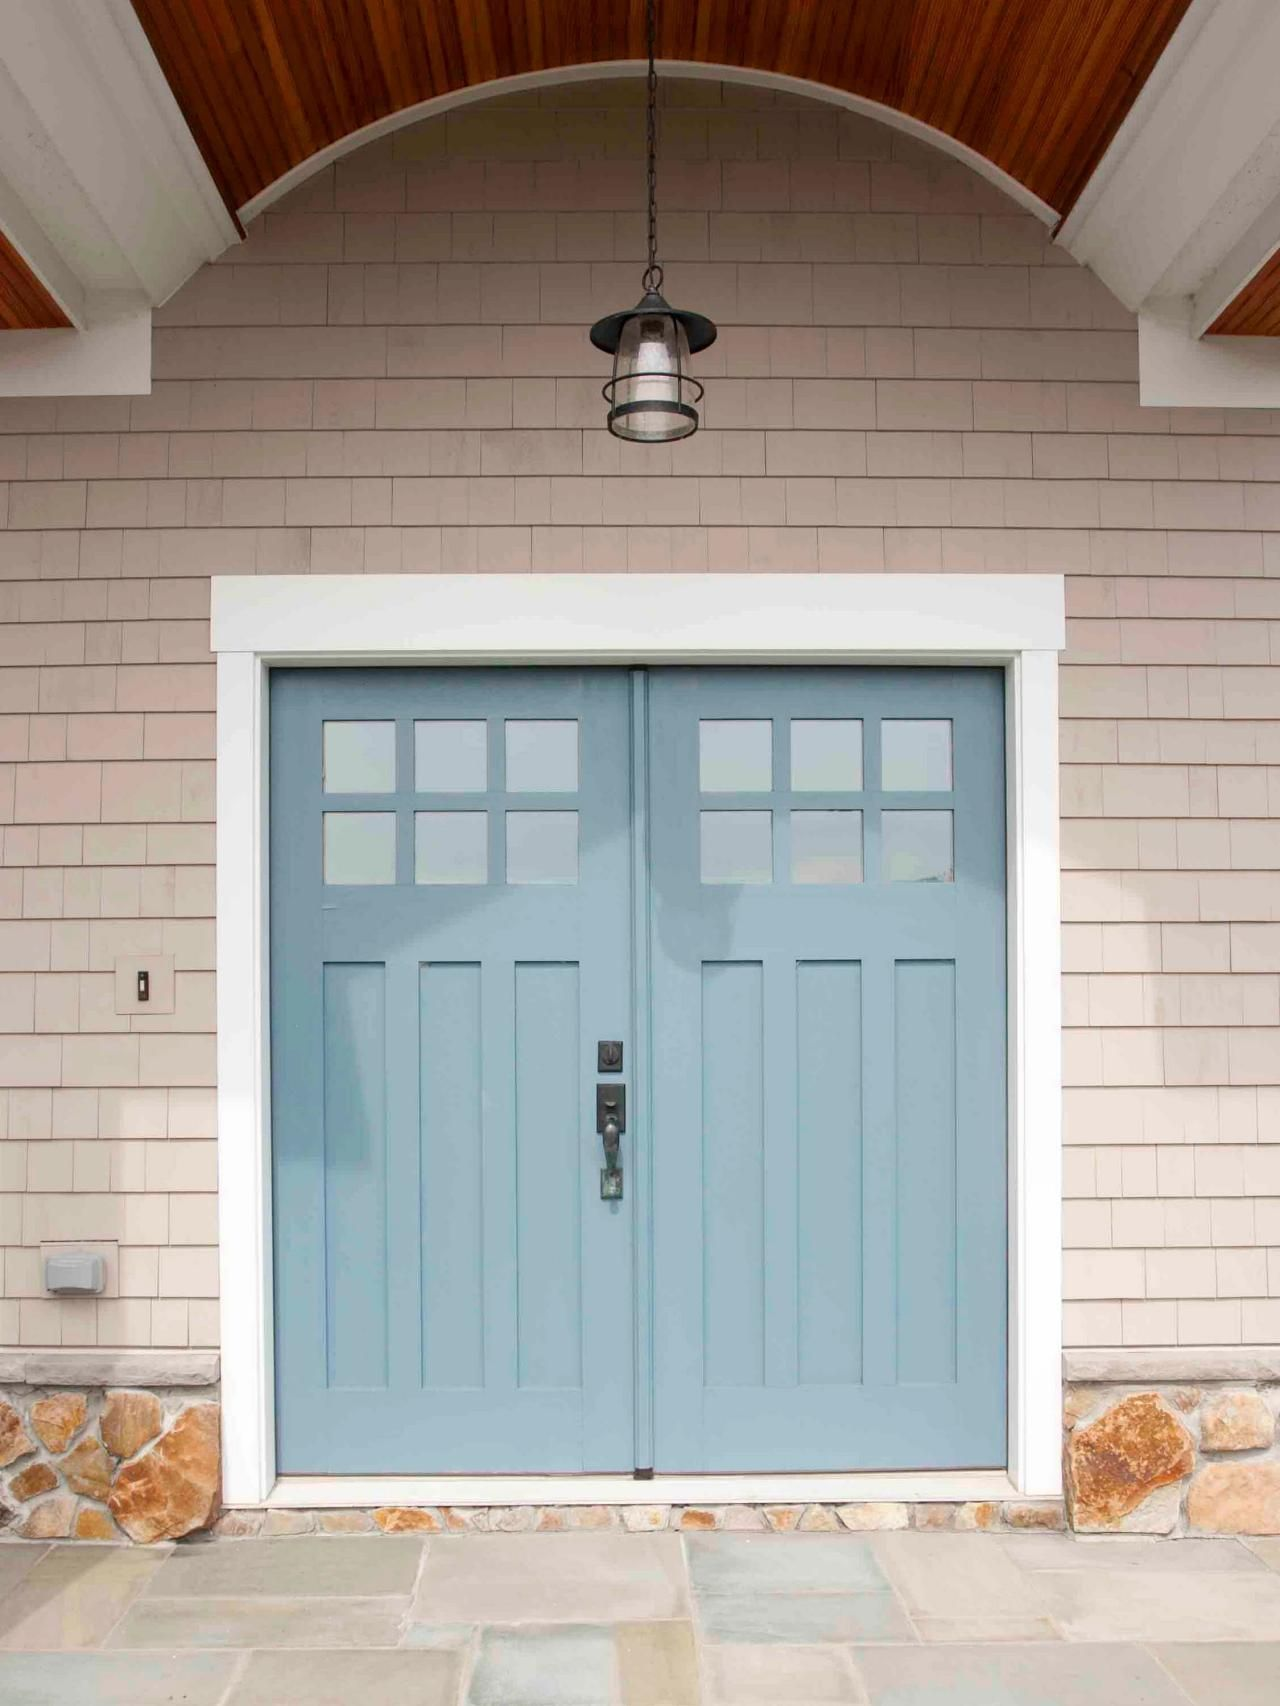 16 Enchanting Modern Entrance Designs That Boost The Appeal Of The Home: Front Door Paint Colors, Painted Front